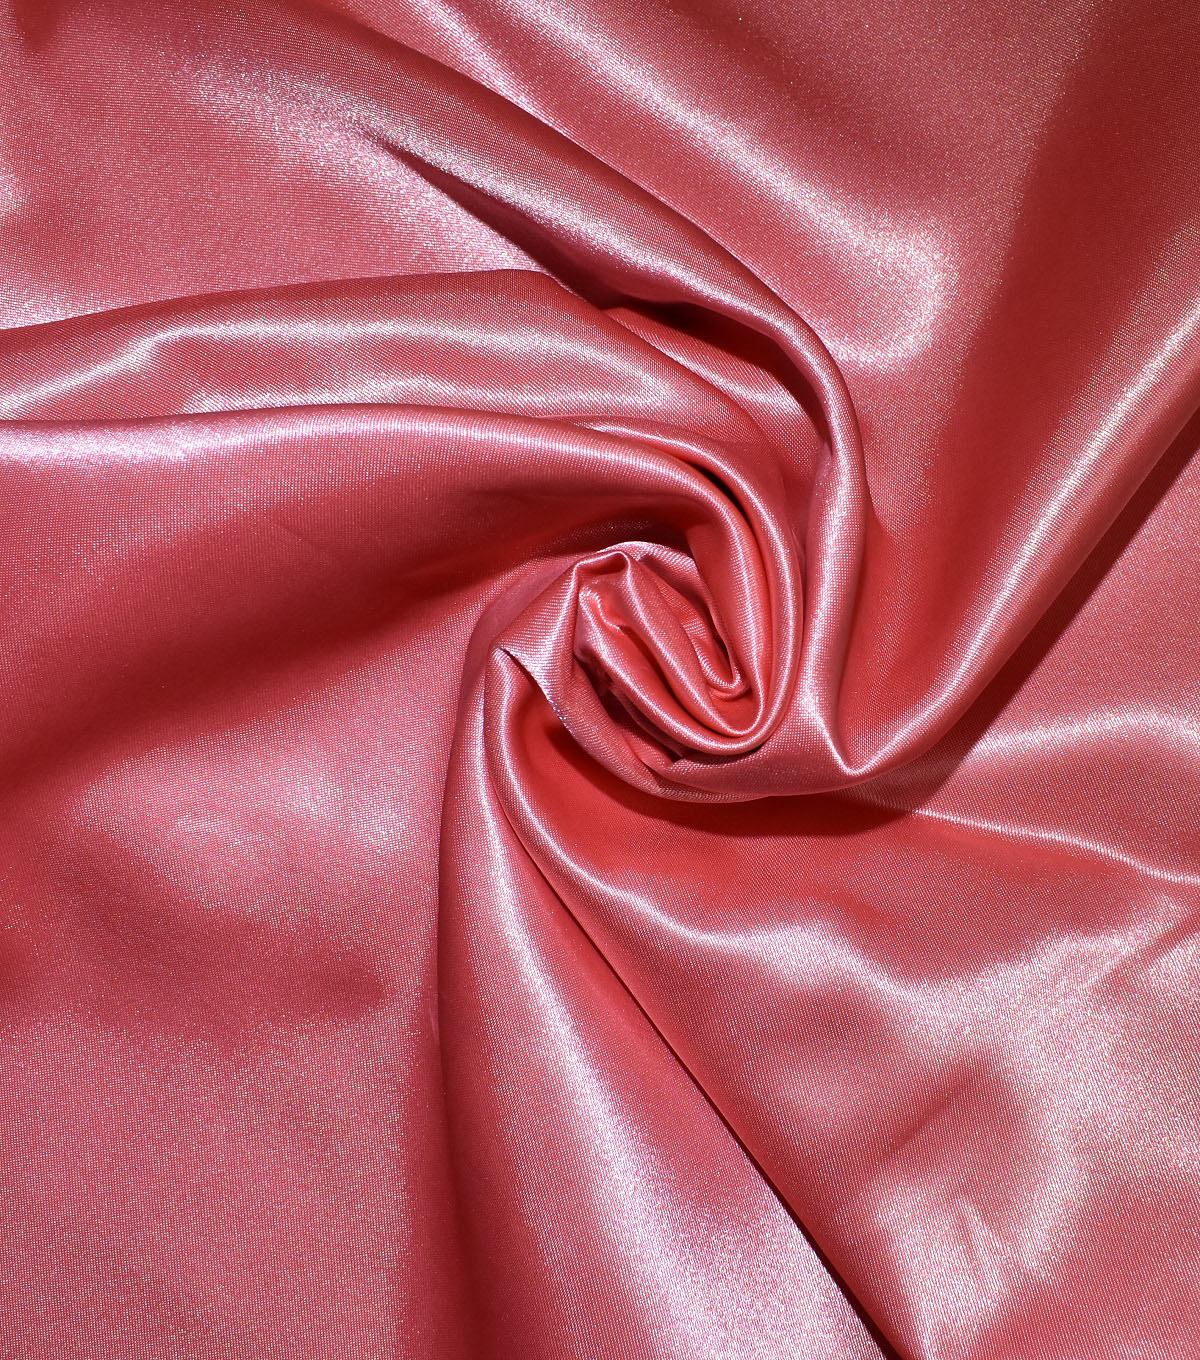 Casa Collection Shiny Satin Fabric, Shell Pink